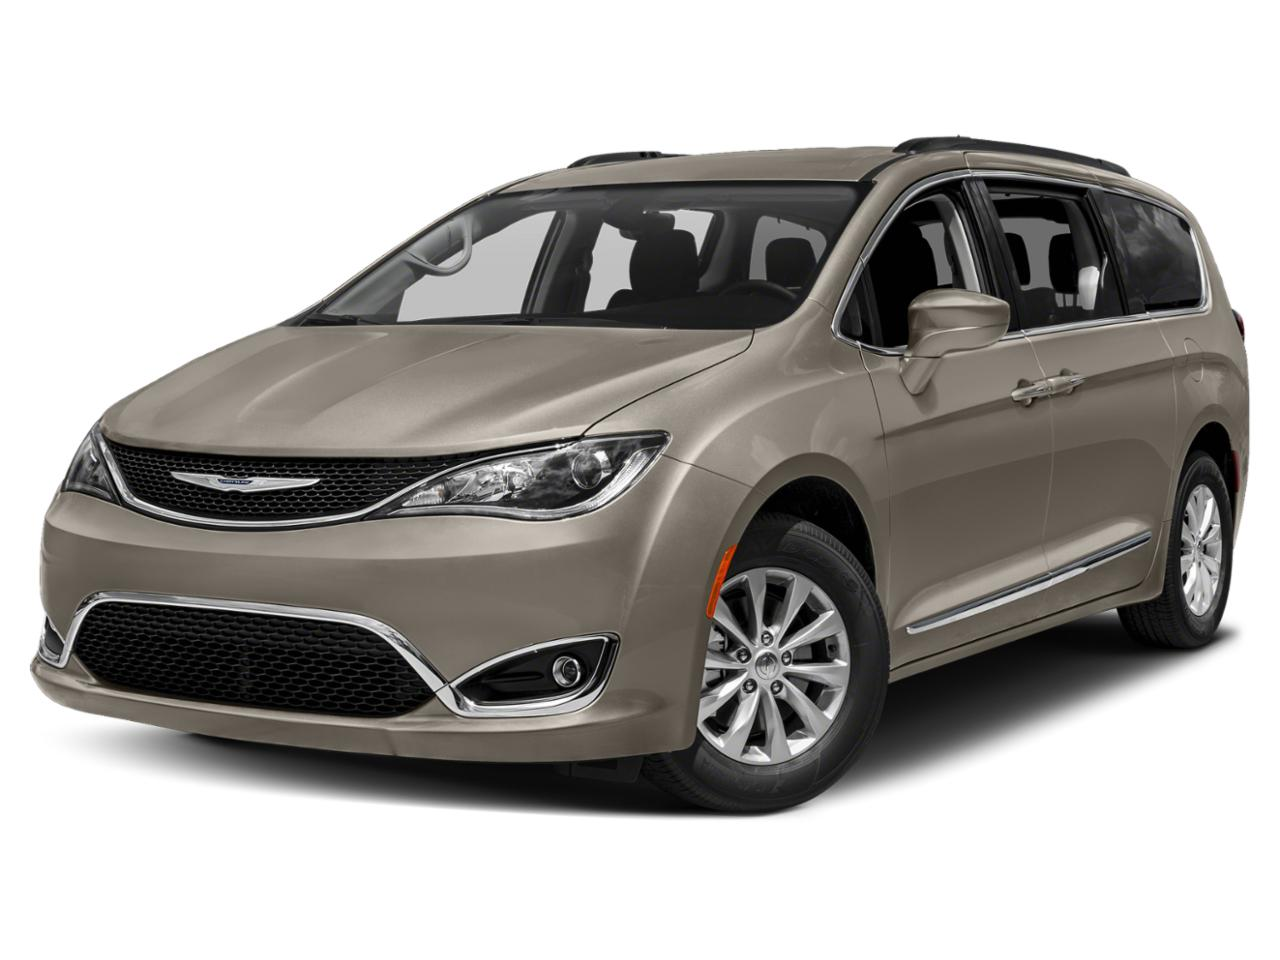 2018 Chrysler Pacifica Vehicle Photo in Peoria, IL 61615